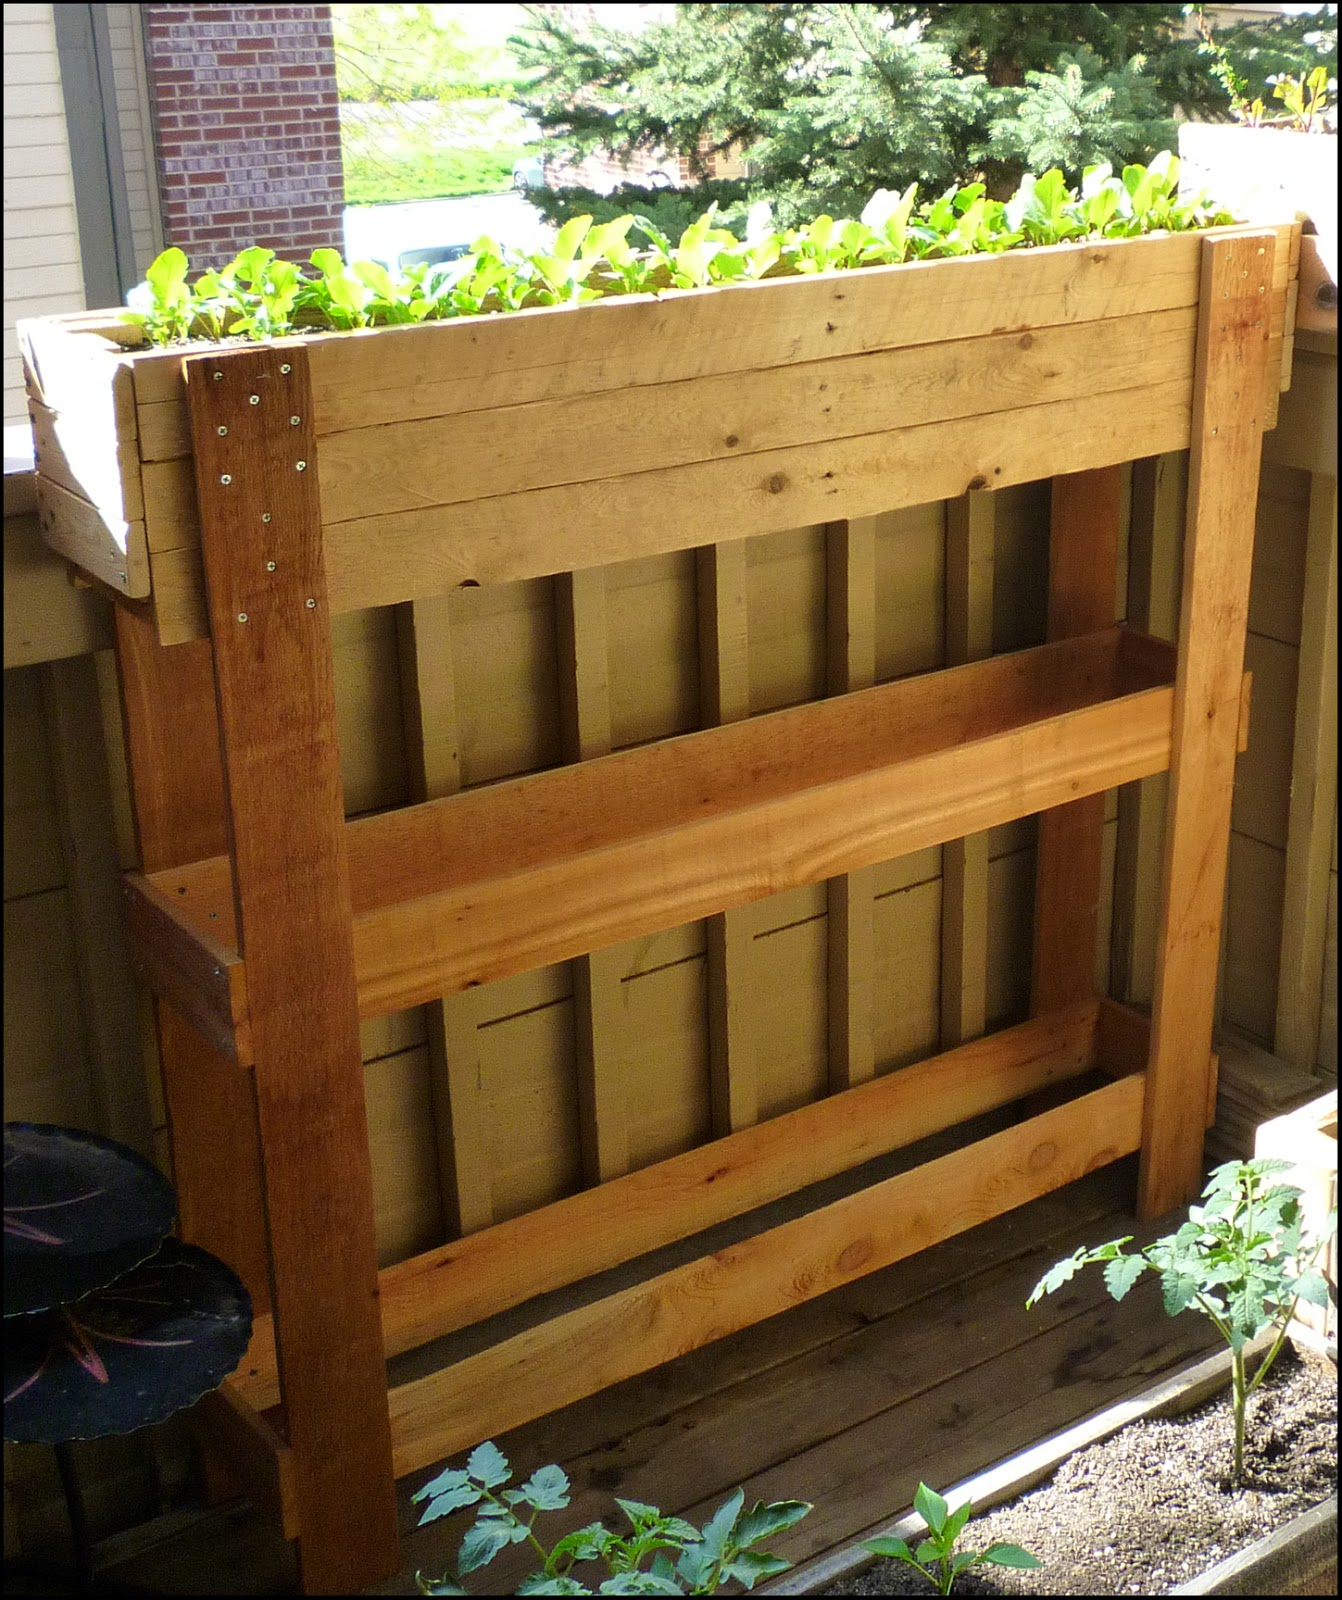 Patio of pots pallet planters a reclaiming project for Making planters from pallets